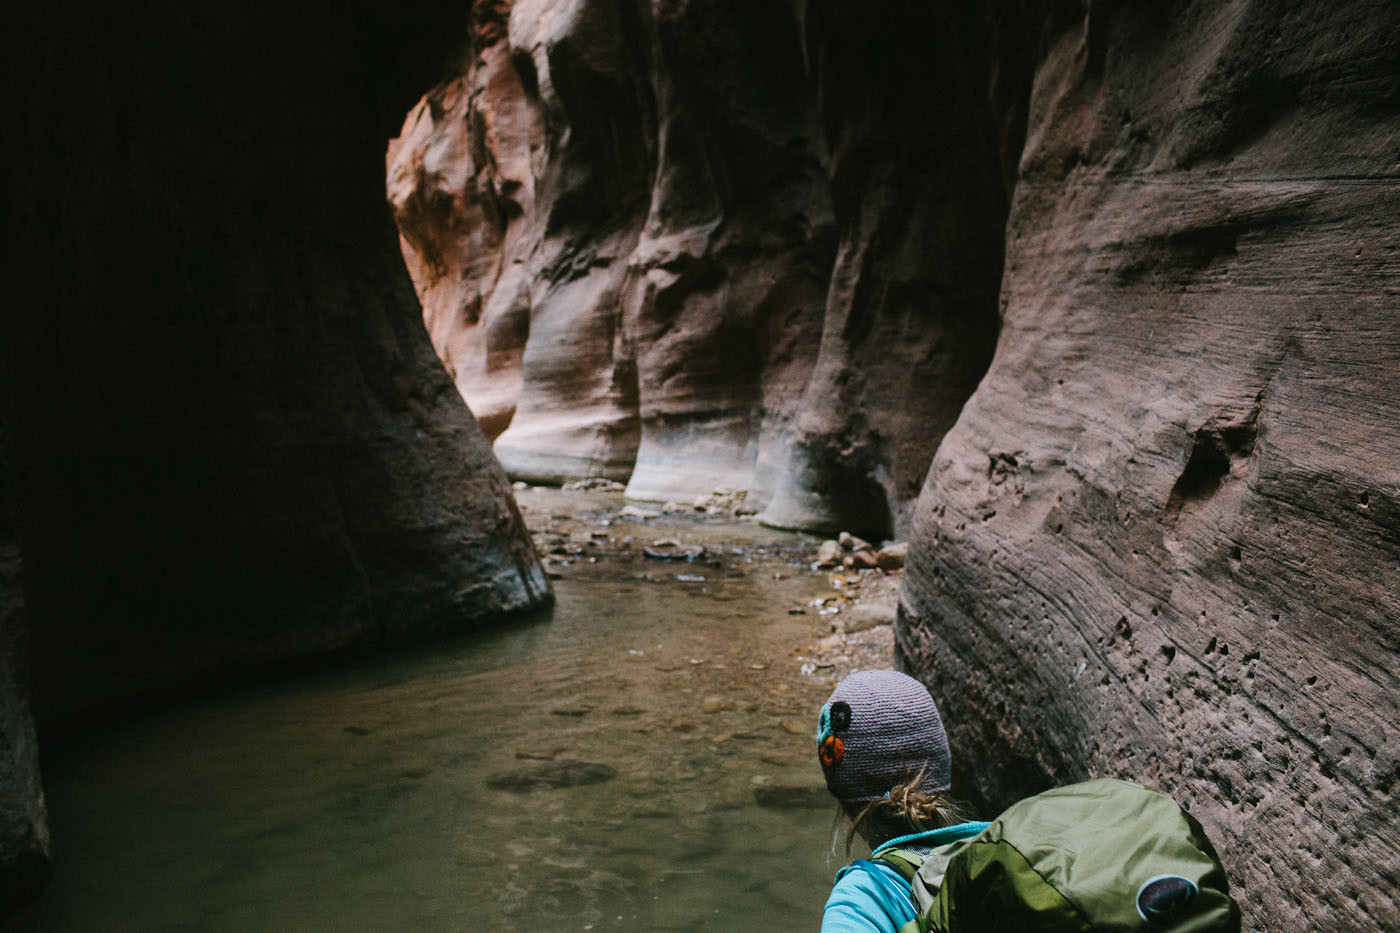 Emily Ayres hiking in the Zion Narrows, Zion National Park, Utah